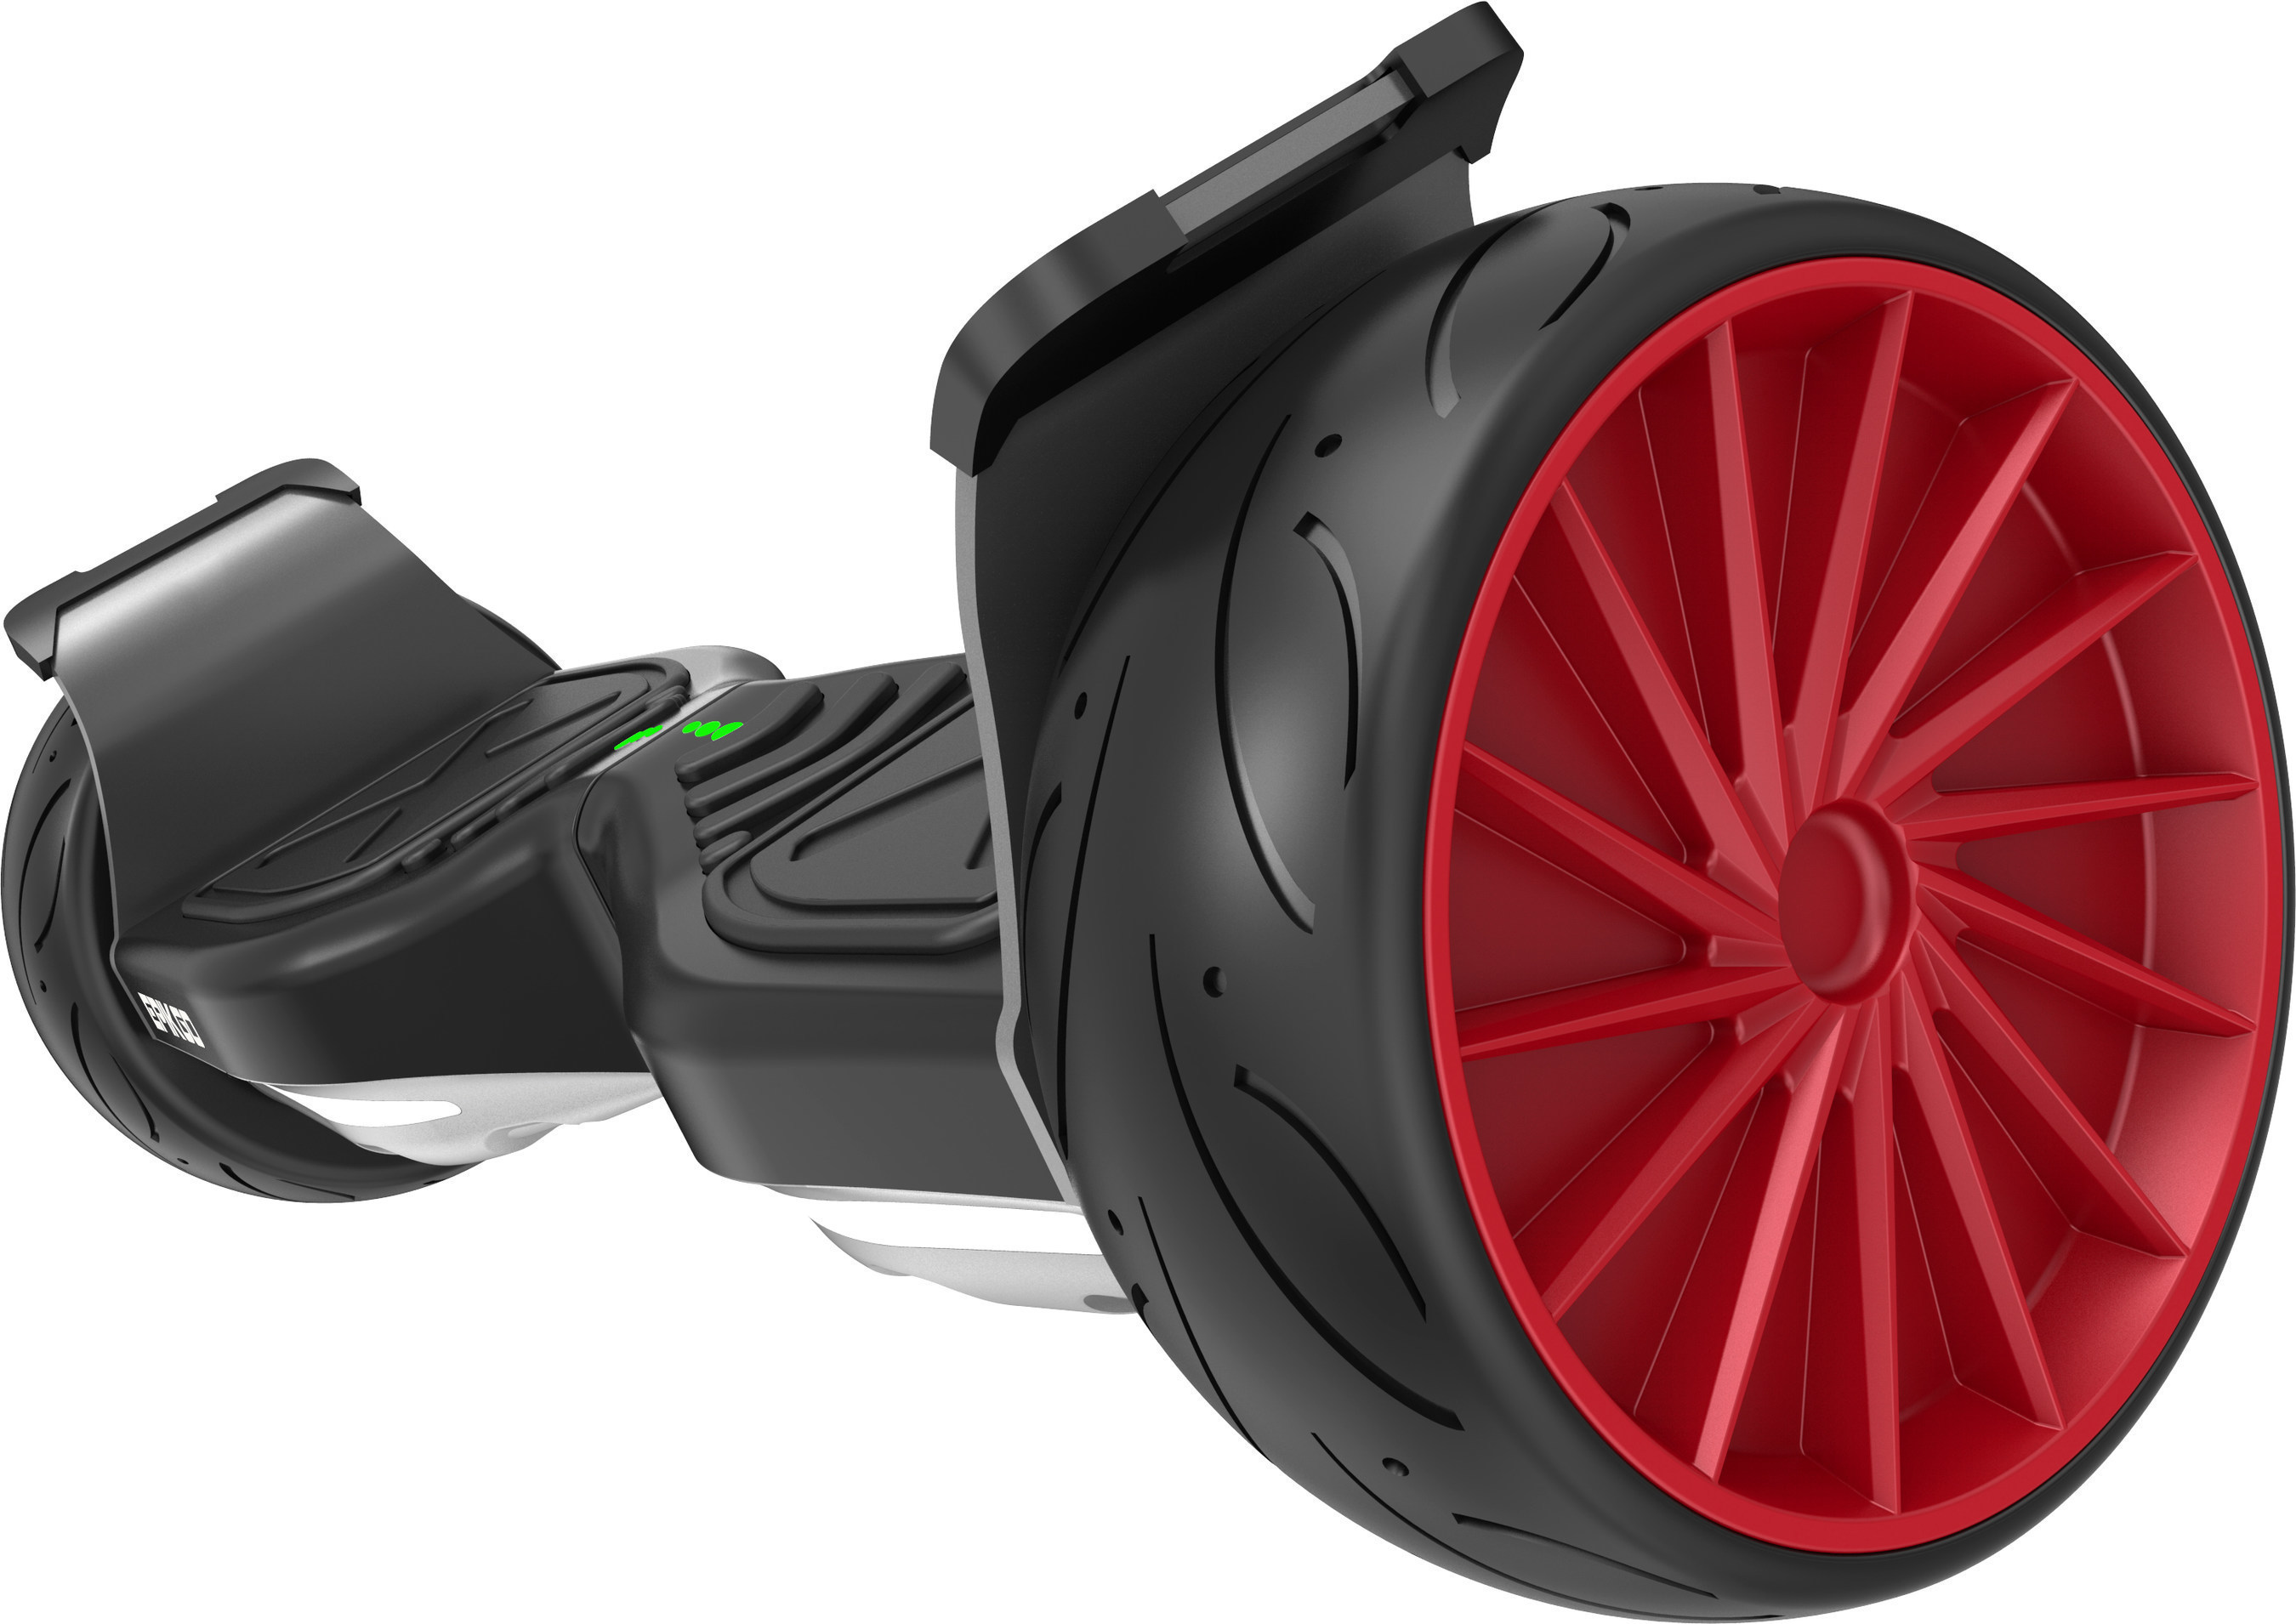 EPIKGO to Launch 3 new Series of Self-Balancing Boards to its Personal Transport Lineup